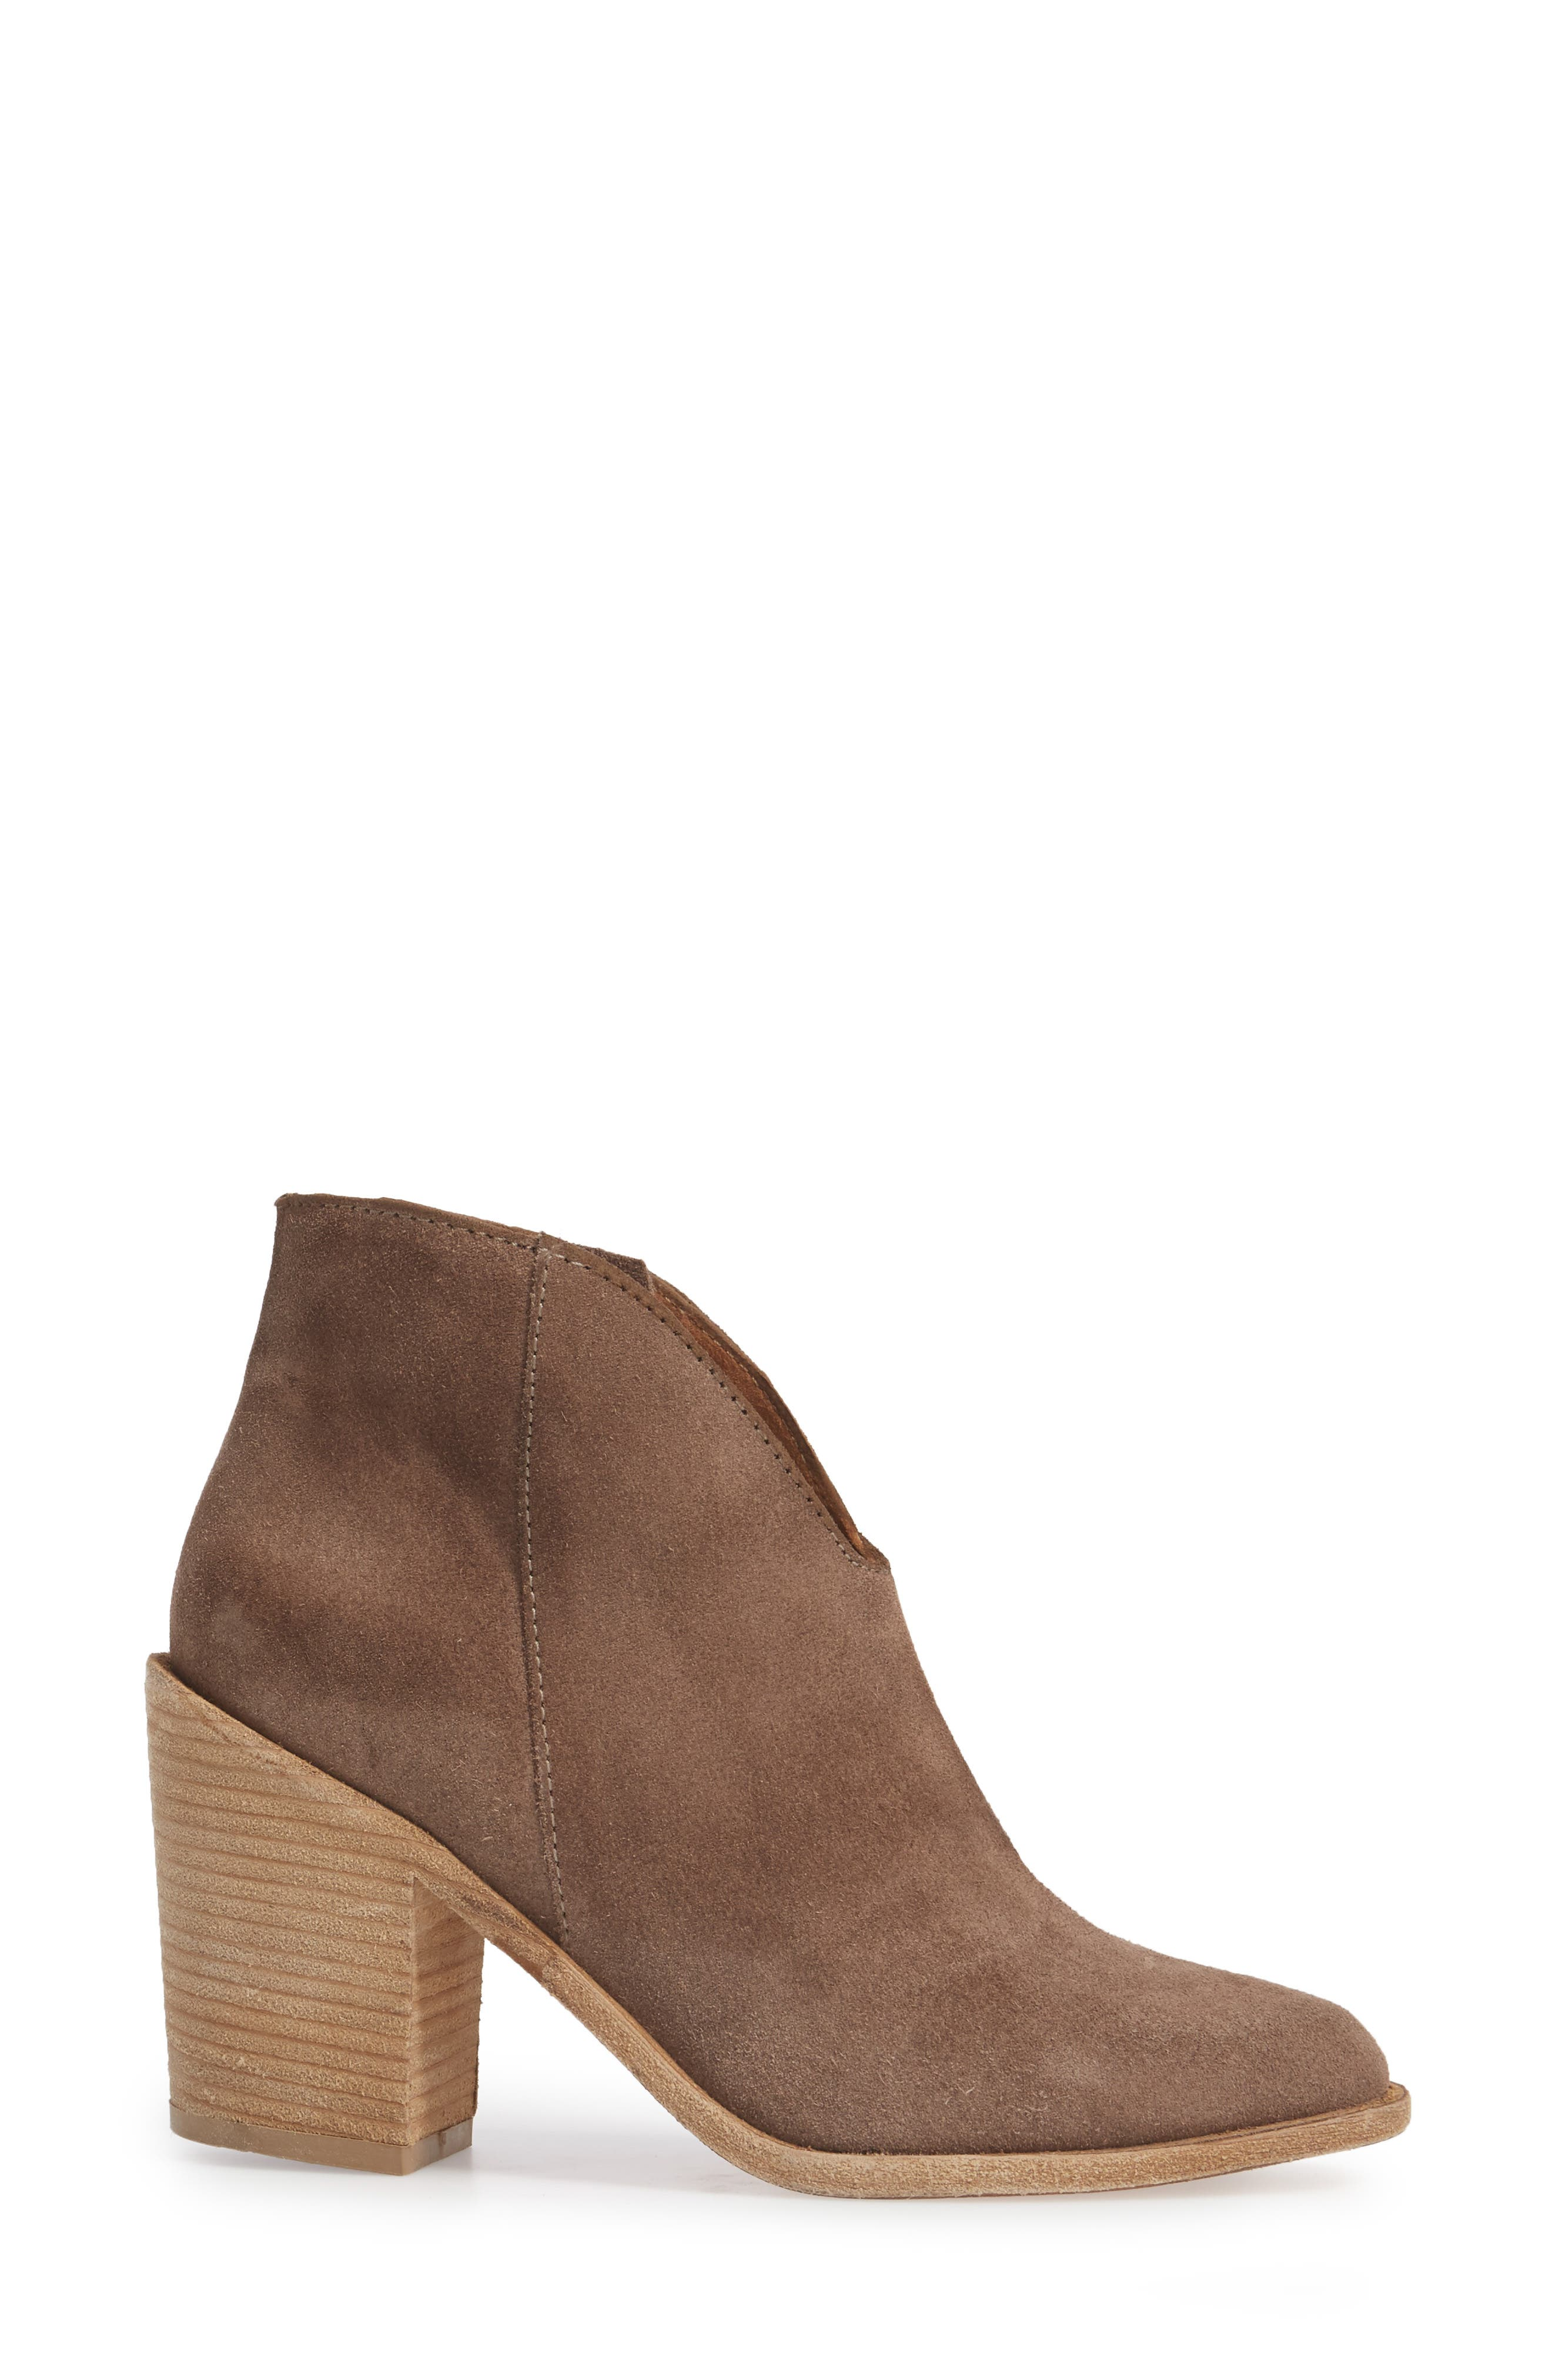 Kamet Bootie,                             Alternate thumbnail 3, color,                             Taupe Oiled Suede